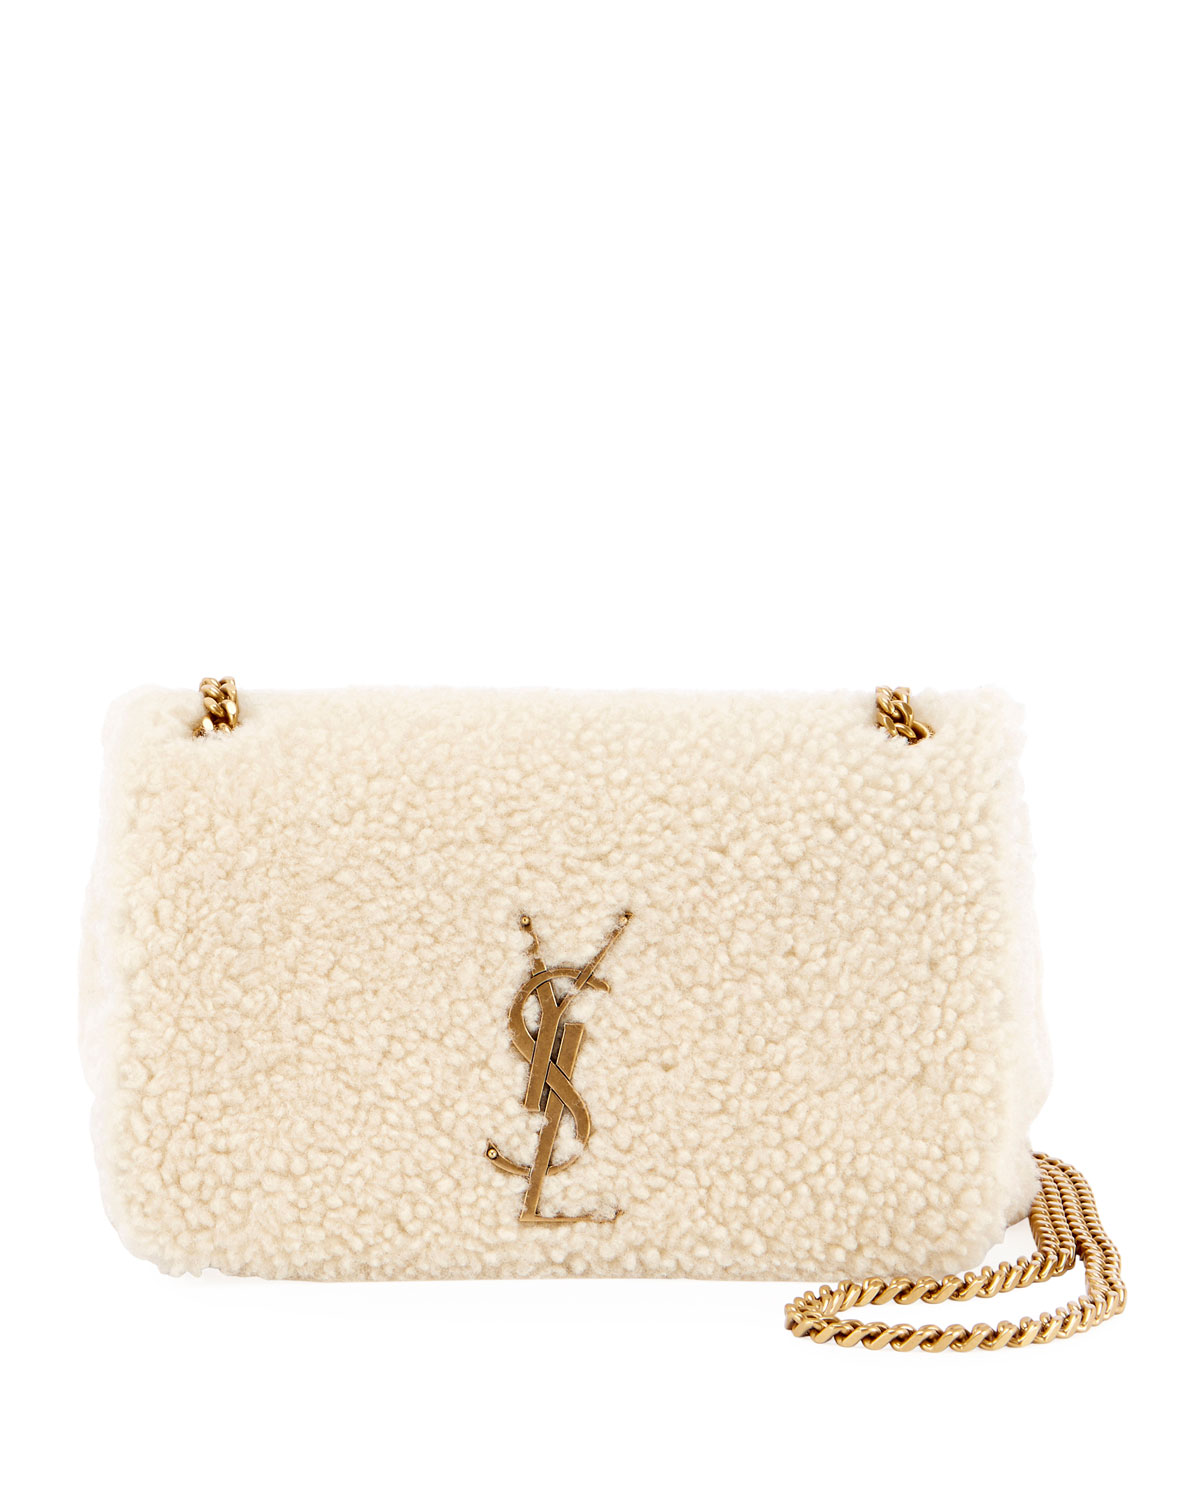 c96fb370504a Saint Laurent Kate Monogram YSL Small Shearling Crossbody Bag ...